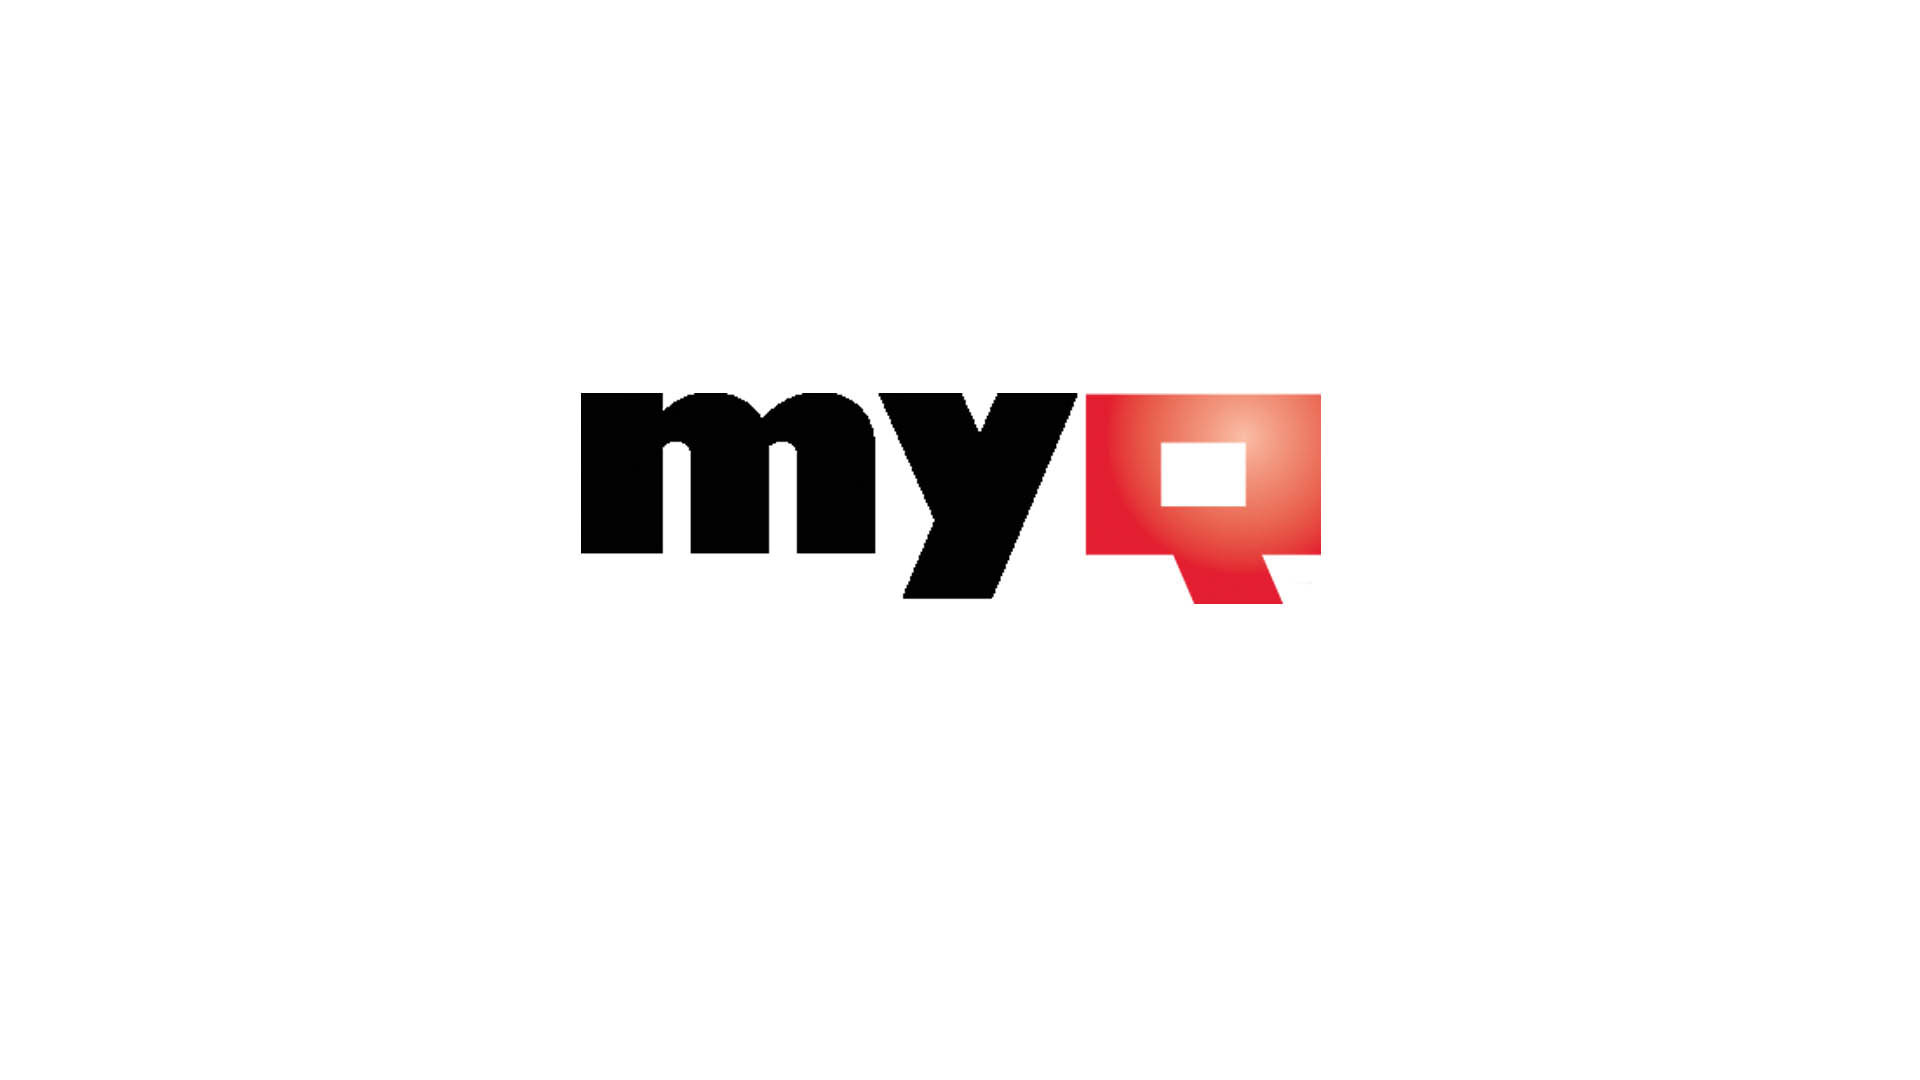 Myq Evolution Technology Group